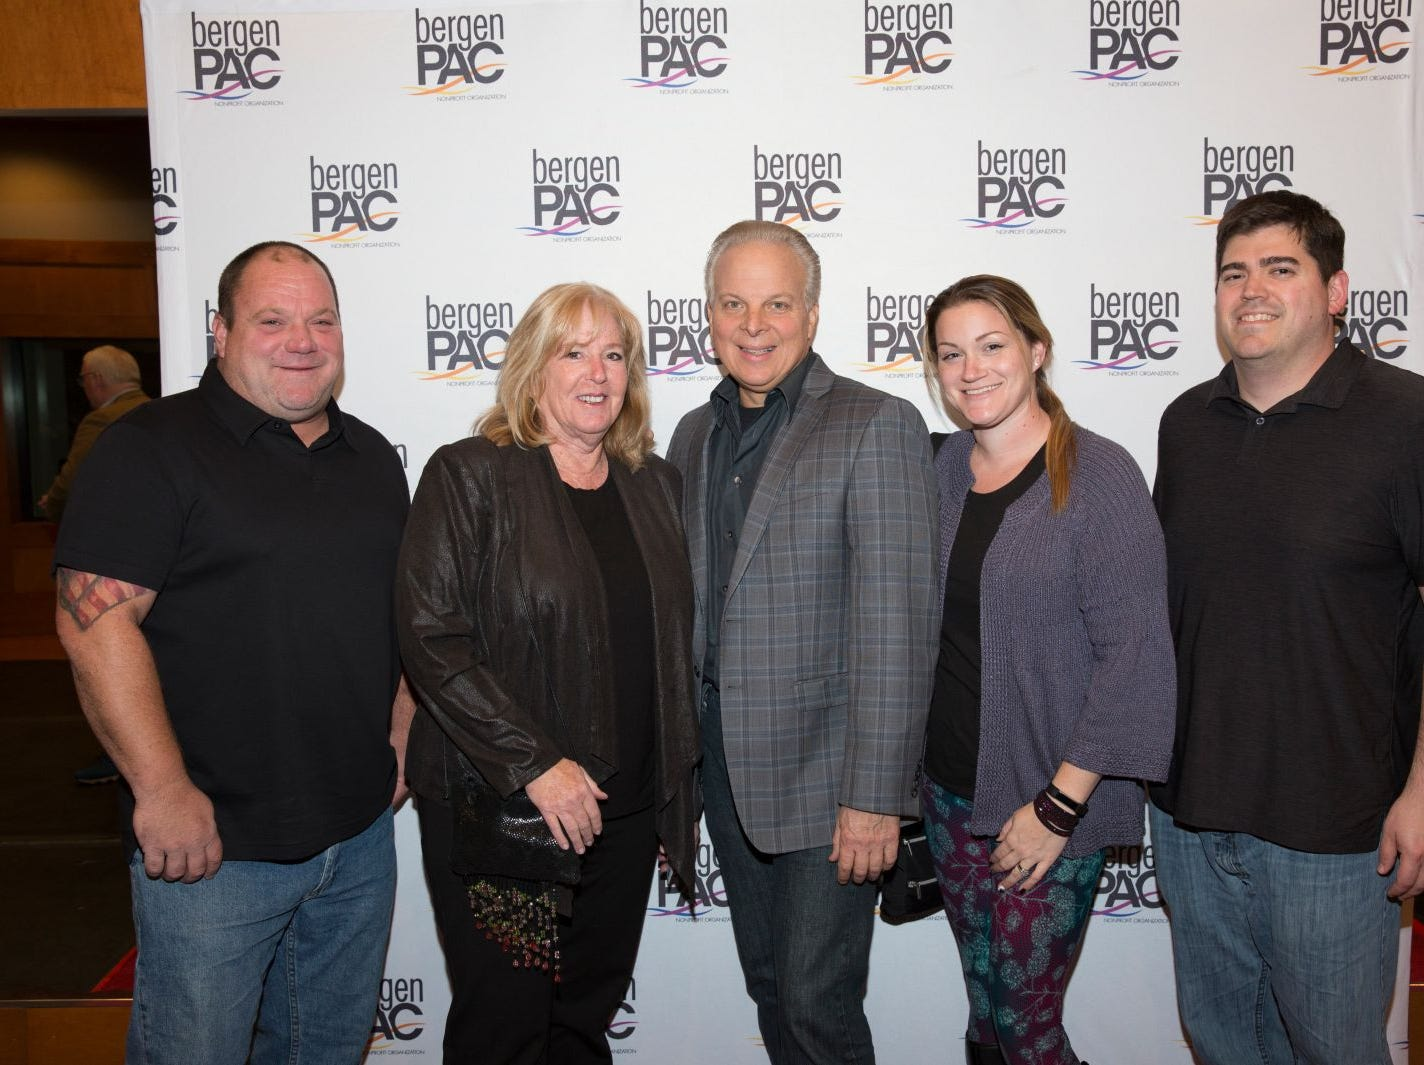 Brian Taylor, Lisa and Rick Garafola, Chrissy and Sean Wefers. BergenPAC held its annual fall gala featuring John Fogerty in Englewood. This year's honoree was Fernando Garip, from Wilmington Trust and M&T Bank. 11/08/2018